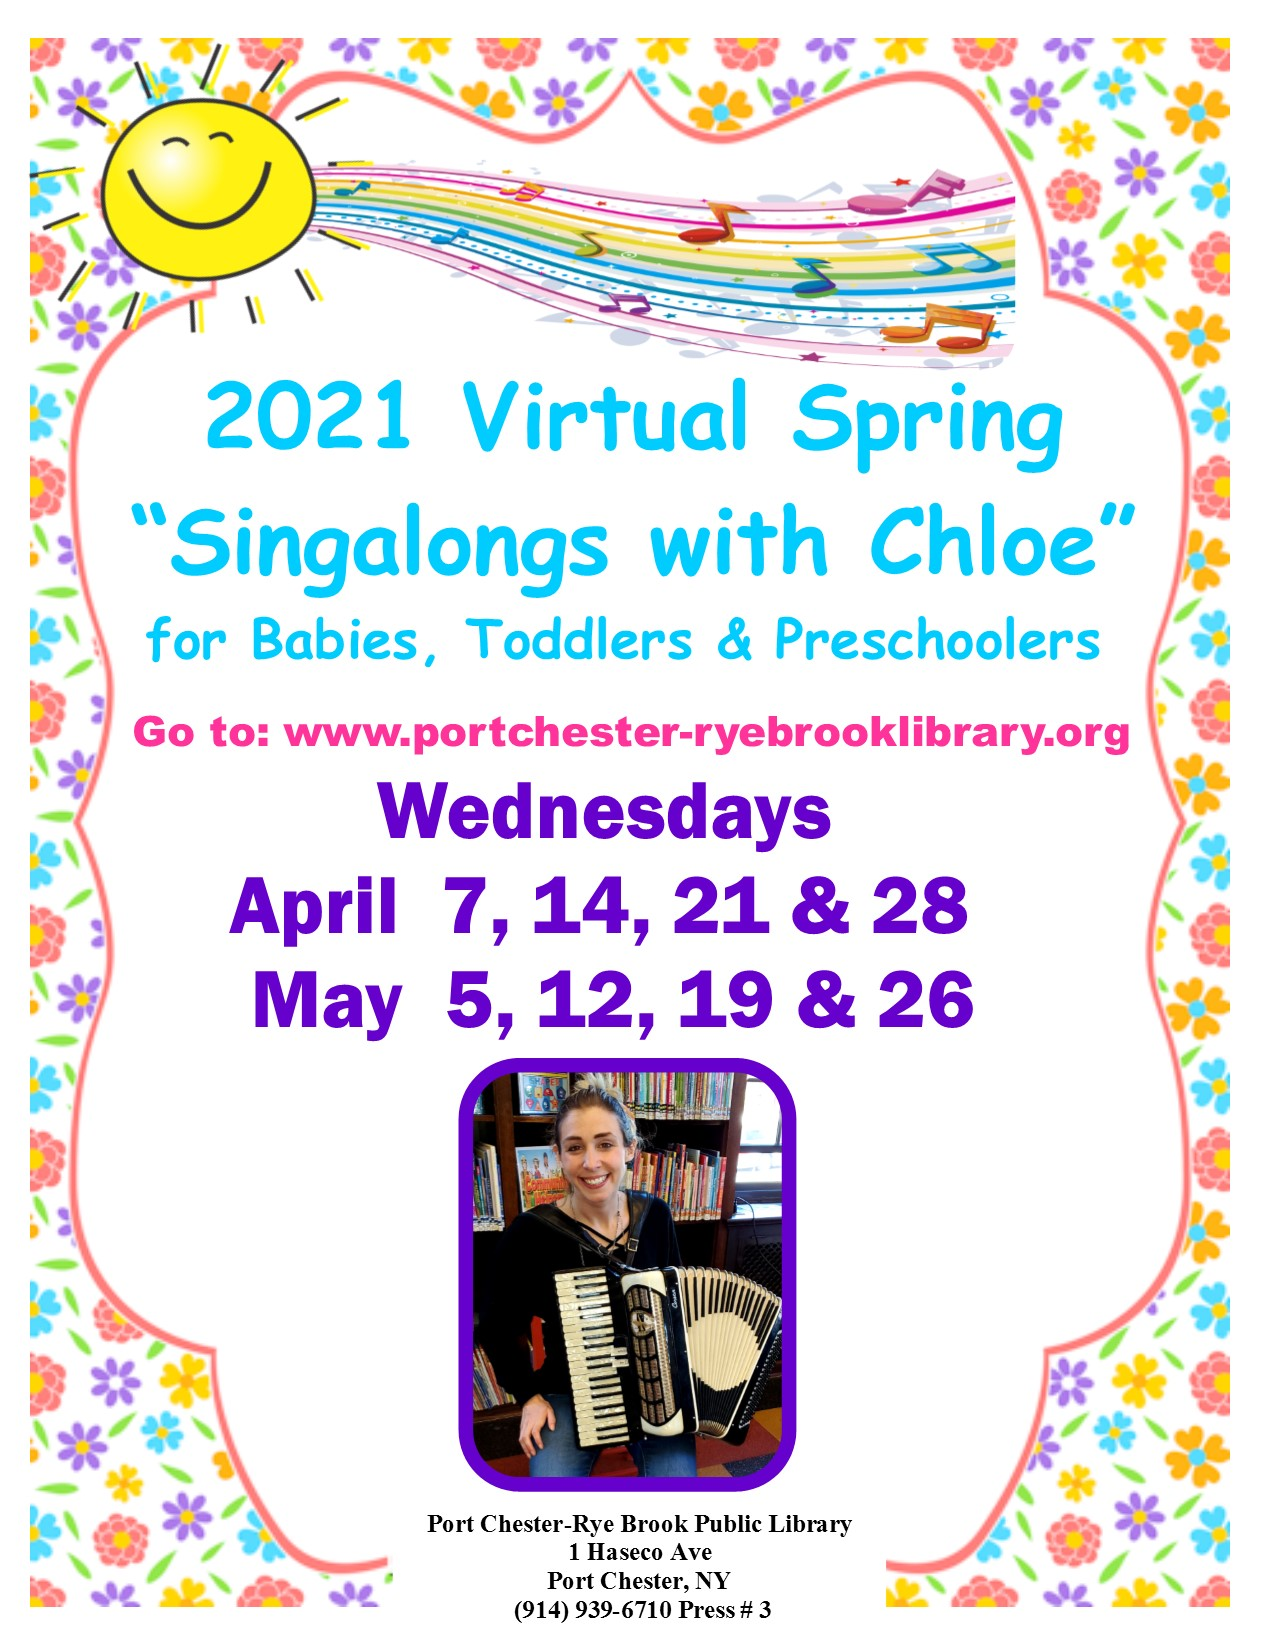 ONLINE Virtual Spring Singalongs with Chloe at Port Chester-Rye Brook Library